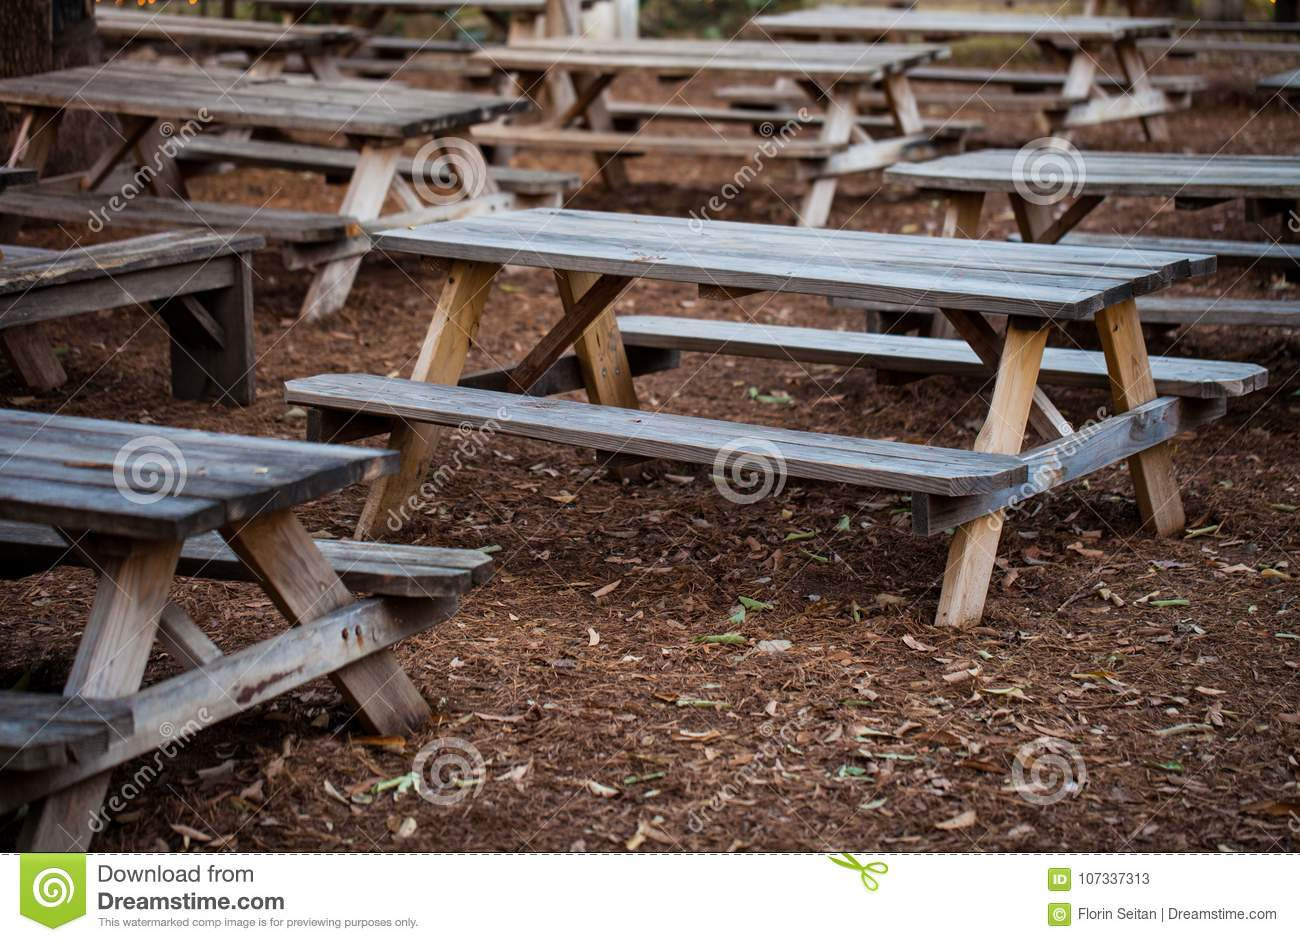 Wooden Rustic Benches Outdoor Restaurant Patio Stock Image Image